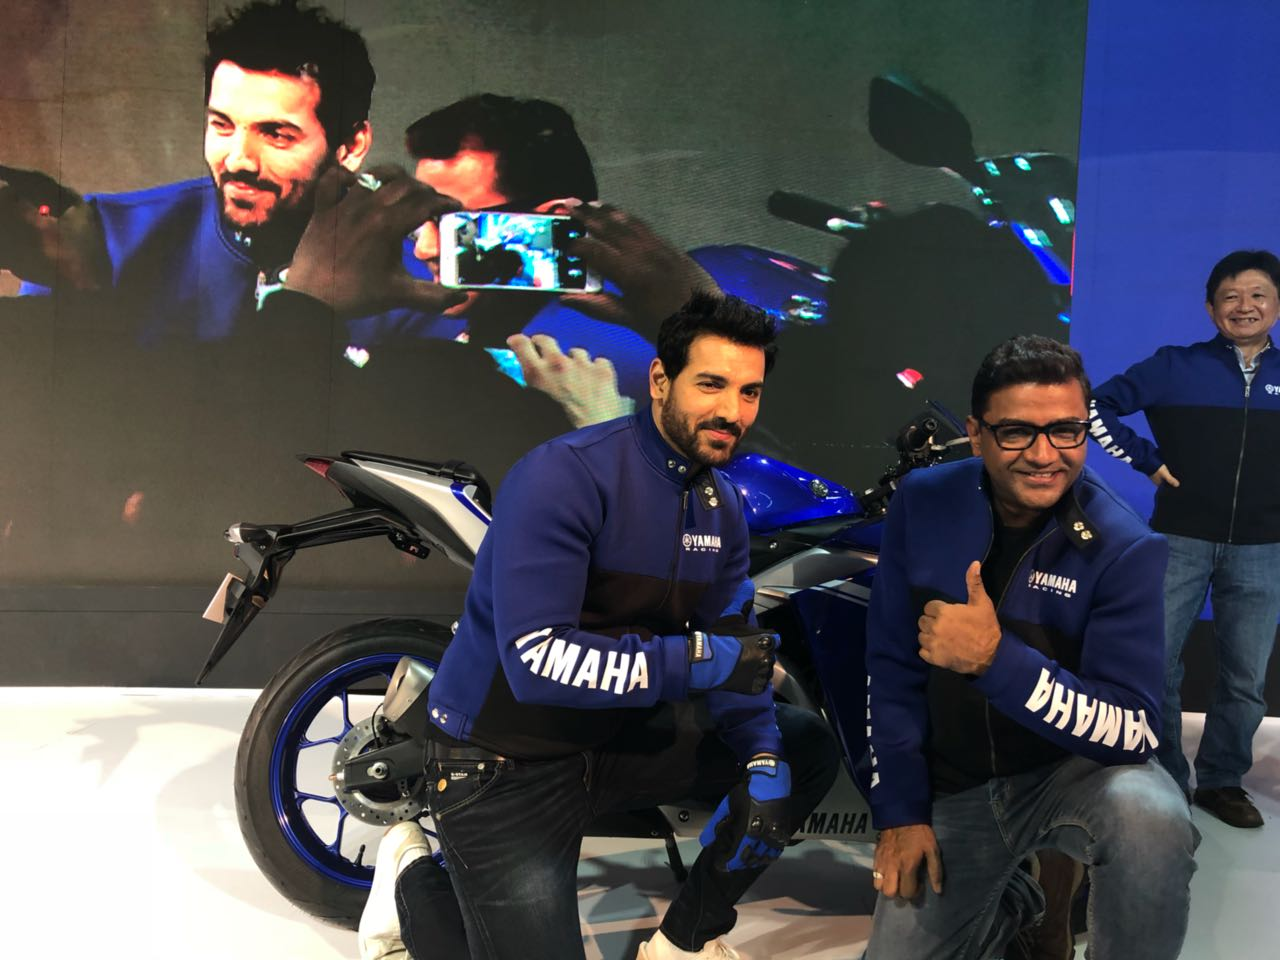 <p>The New Yamaha R3 will be launched with Dual Channel ABS and Metzeler M5 tyres. The Yamaha R3 will be priced at 3.48L, ex-showroom.</p>